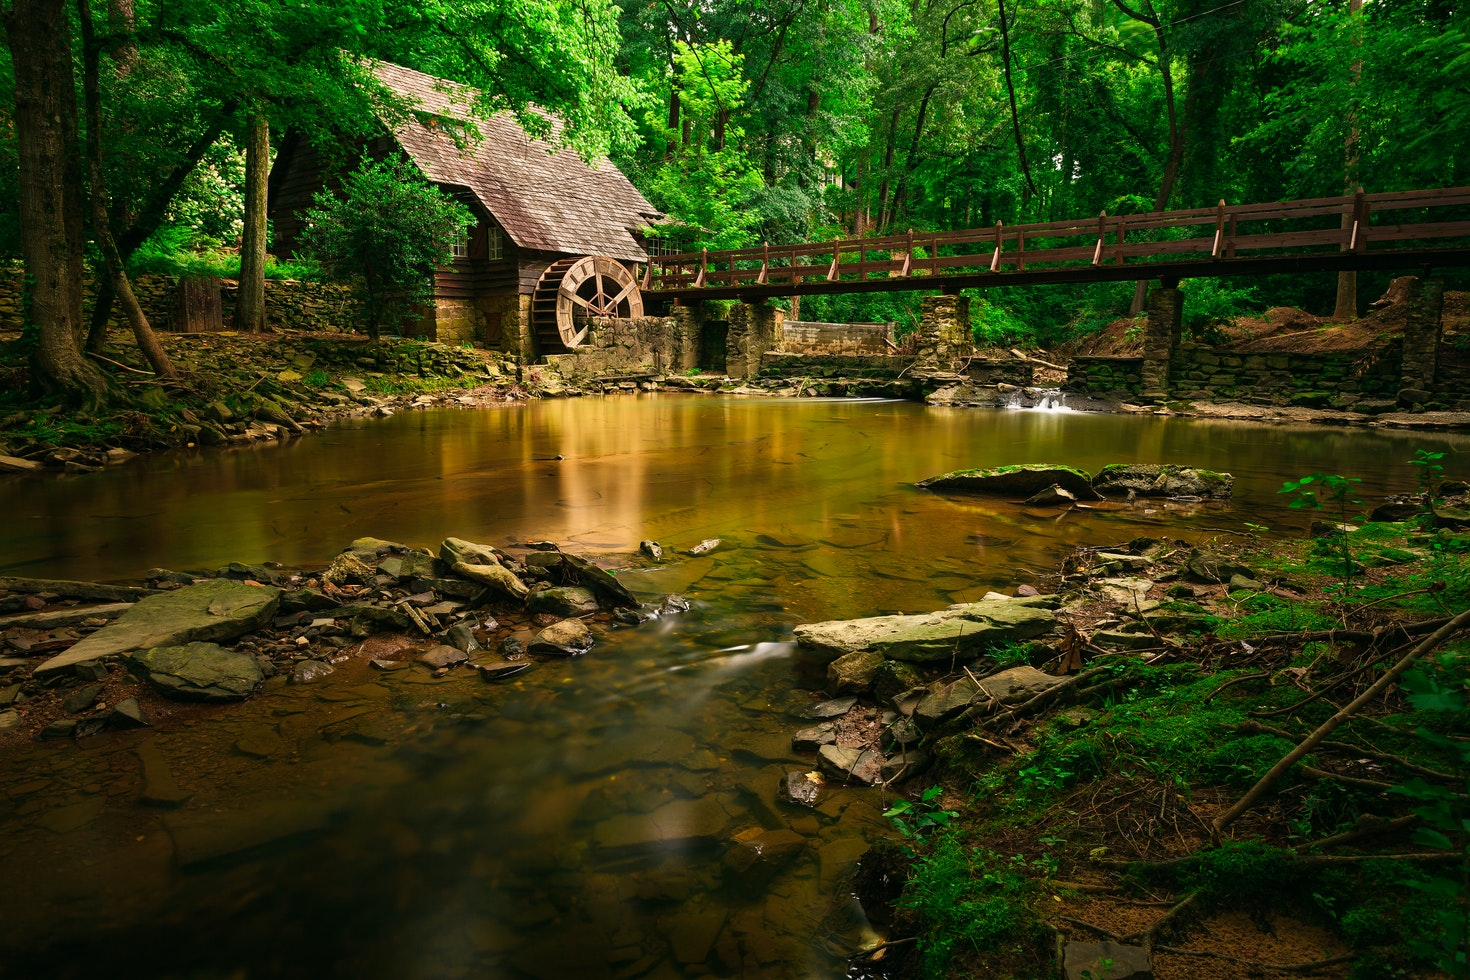 An old mill in Mountain Brook, a suburb of Birmingham Alabama © Robbie Brewer / 500px